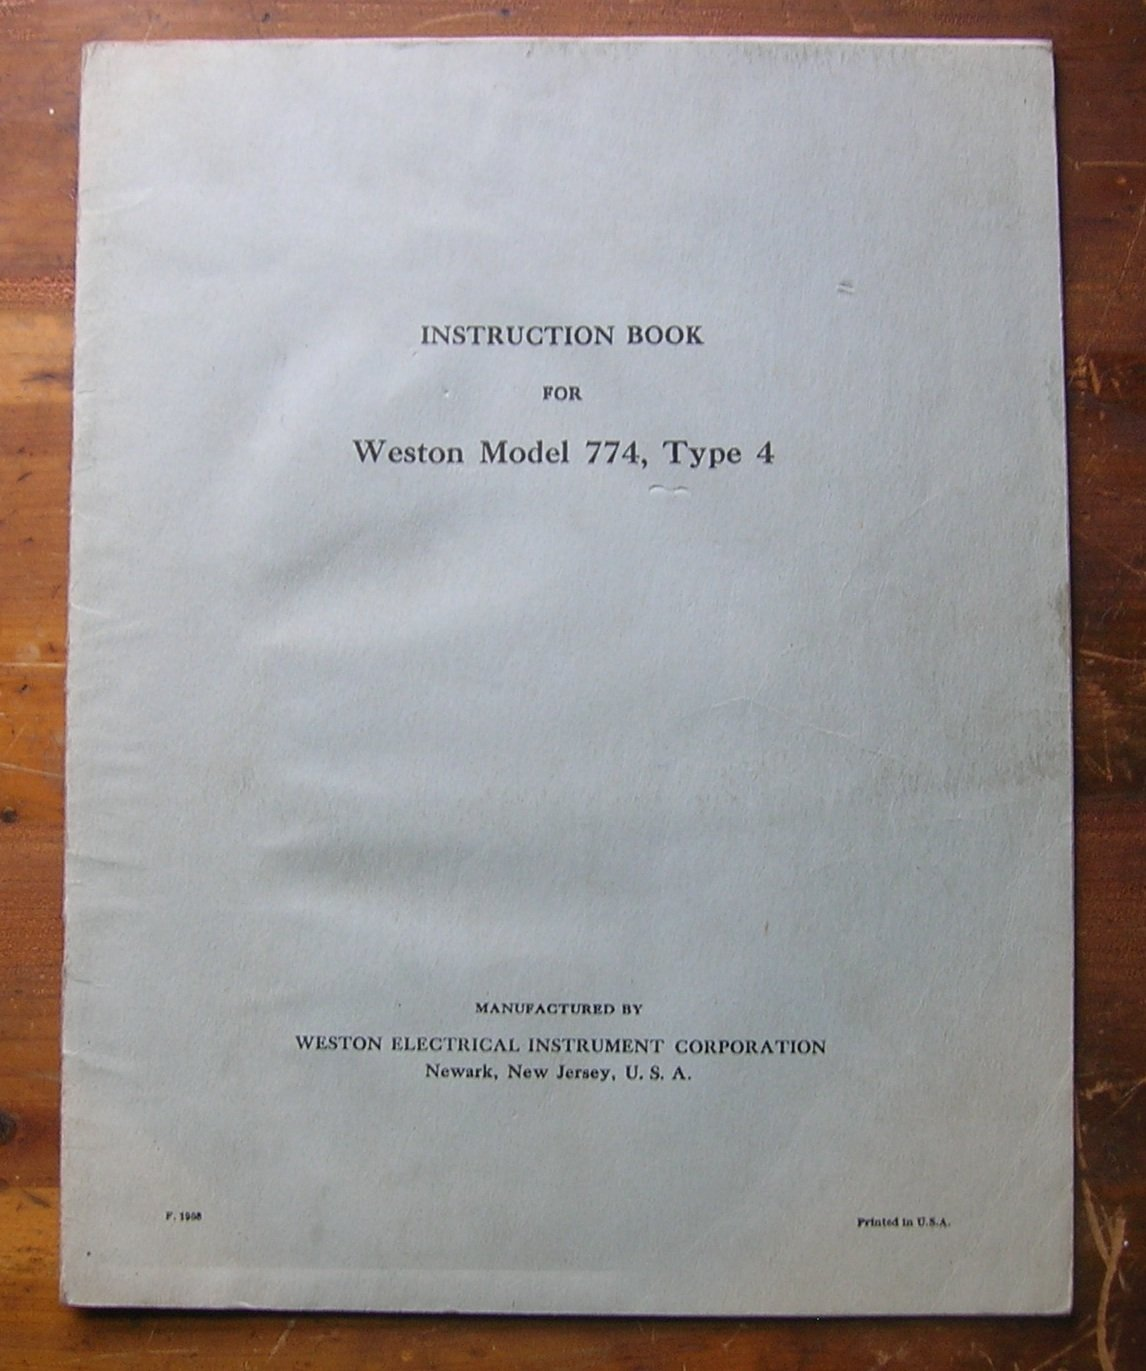 Instruction Book for Weston Model 774, Type 4.: Weston Electrical  Instrument Corporation.: Amazon.com: Books